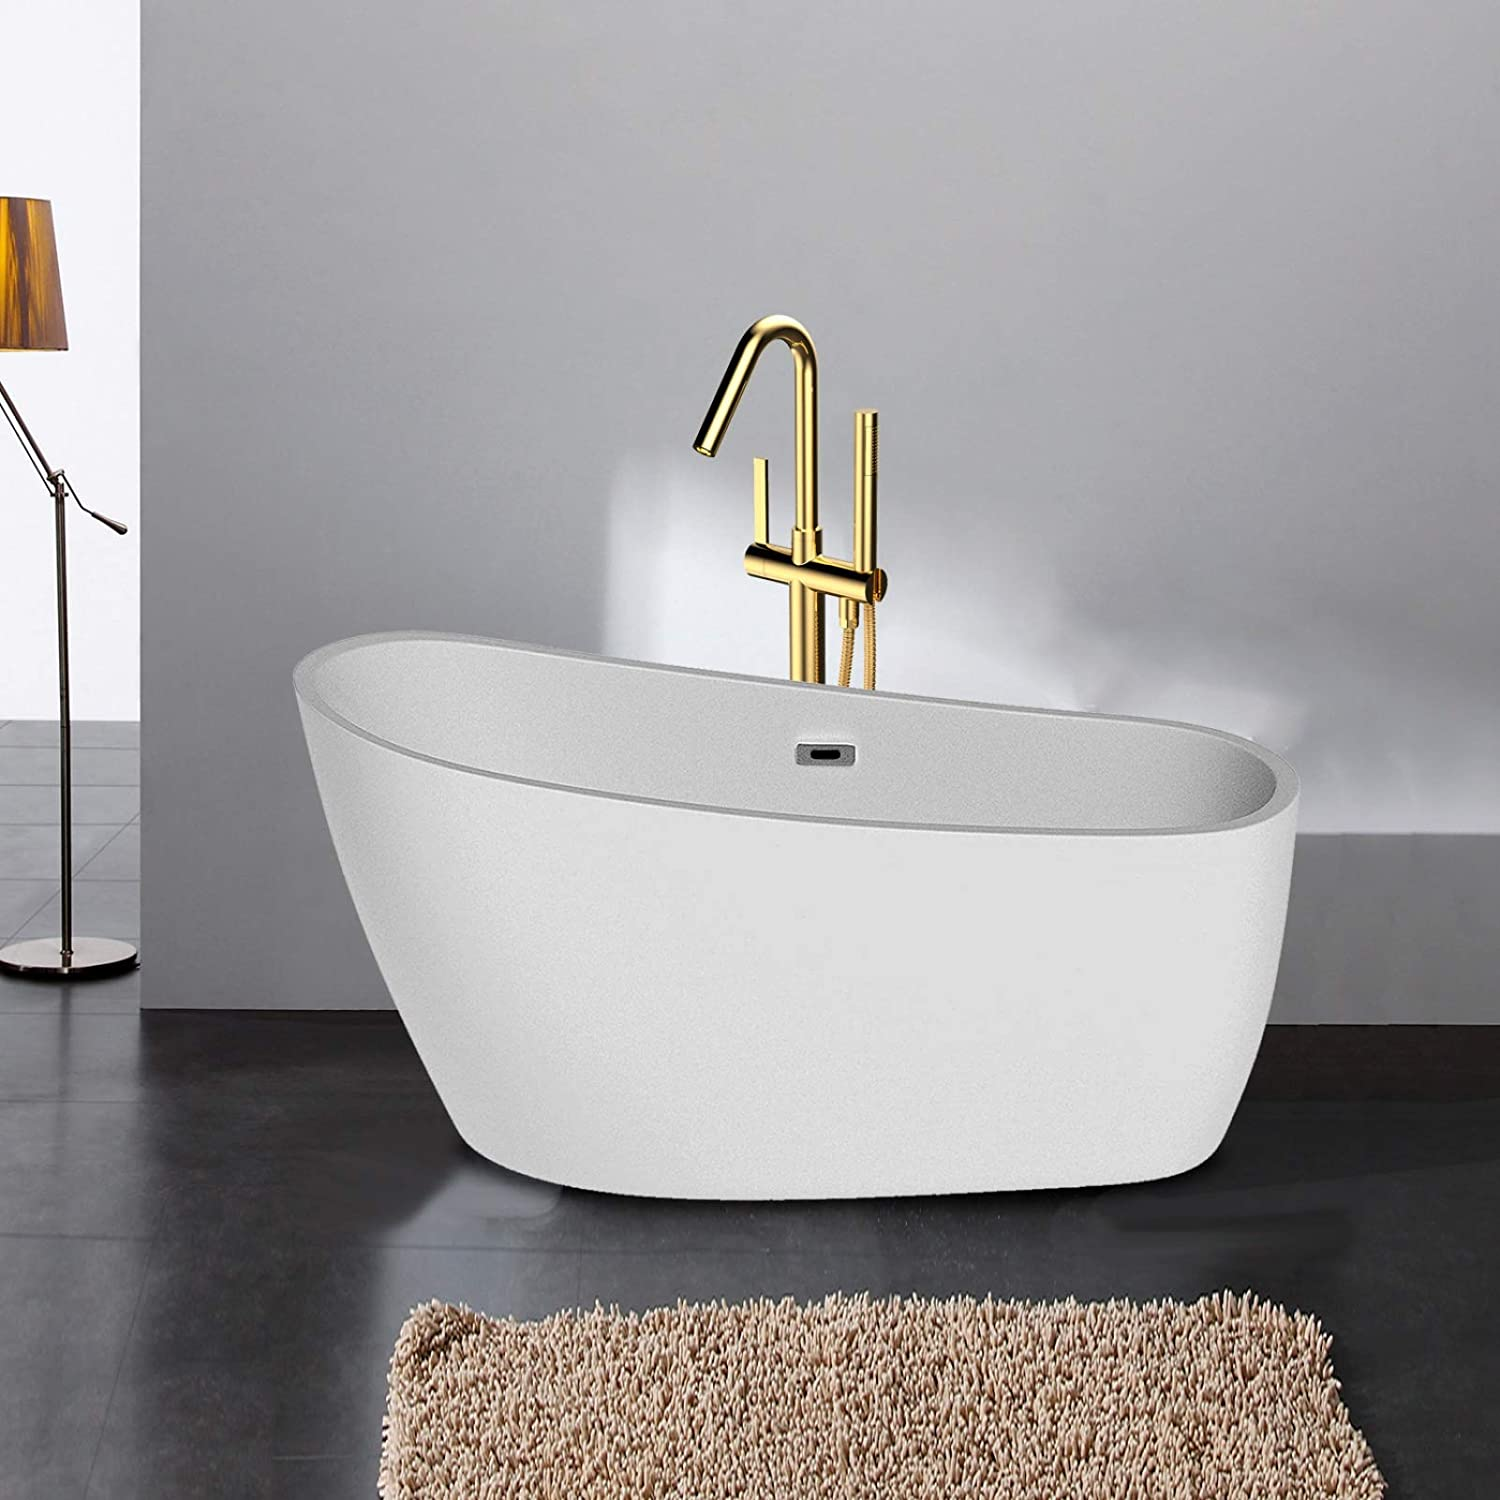 Freestanding Acrylic Bathtub Houston Online limited product Mall Du Modern with